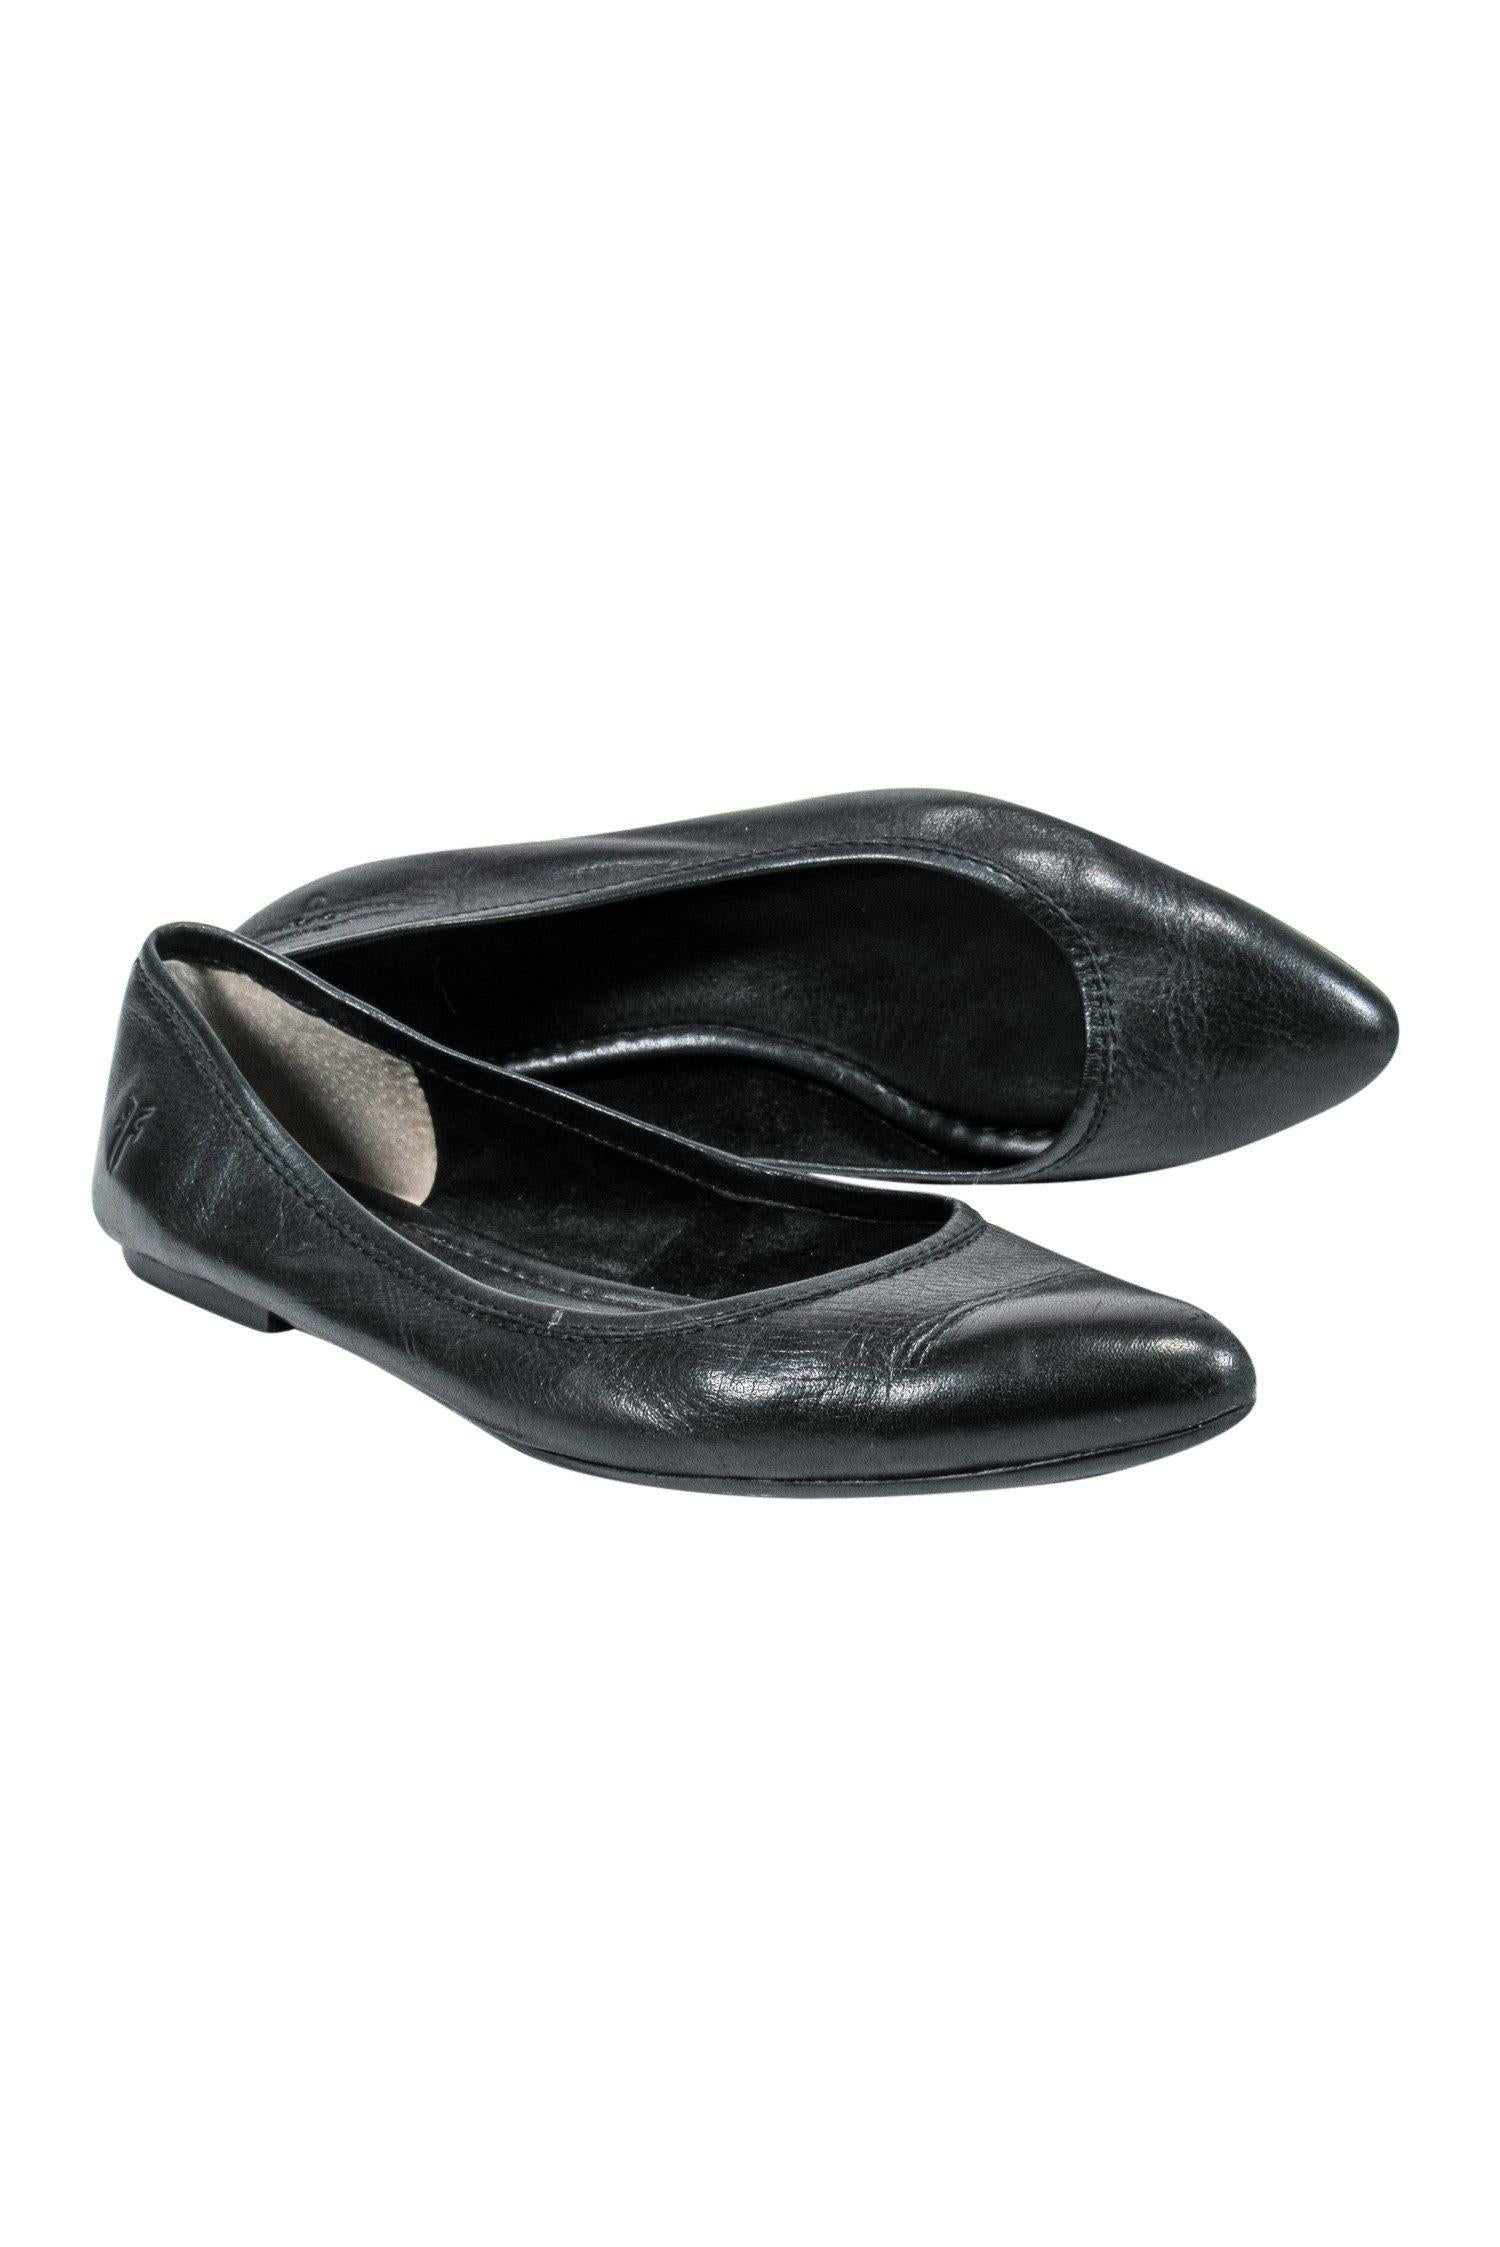 Frye - Black Leather Pointed-Toe Ballet Flats Sz 8.5